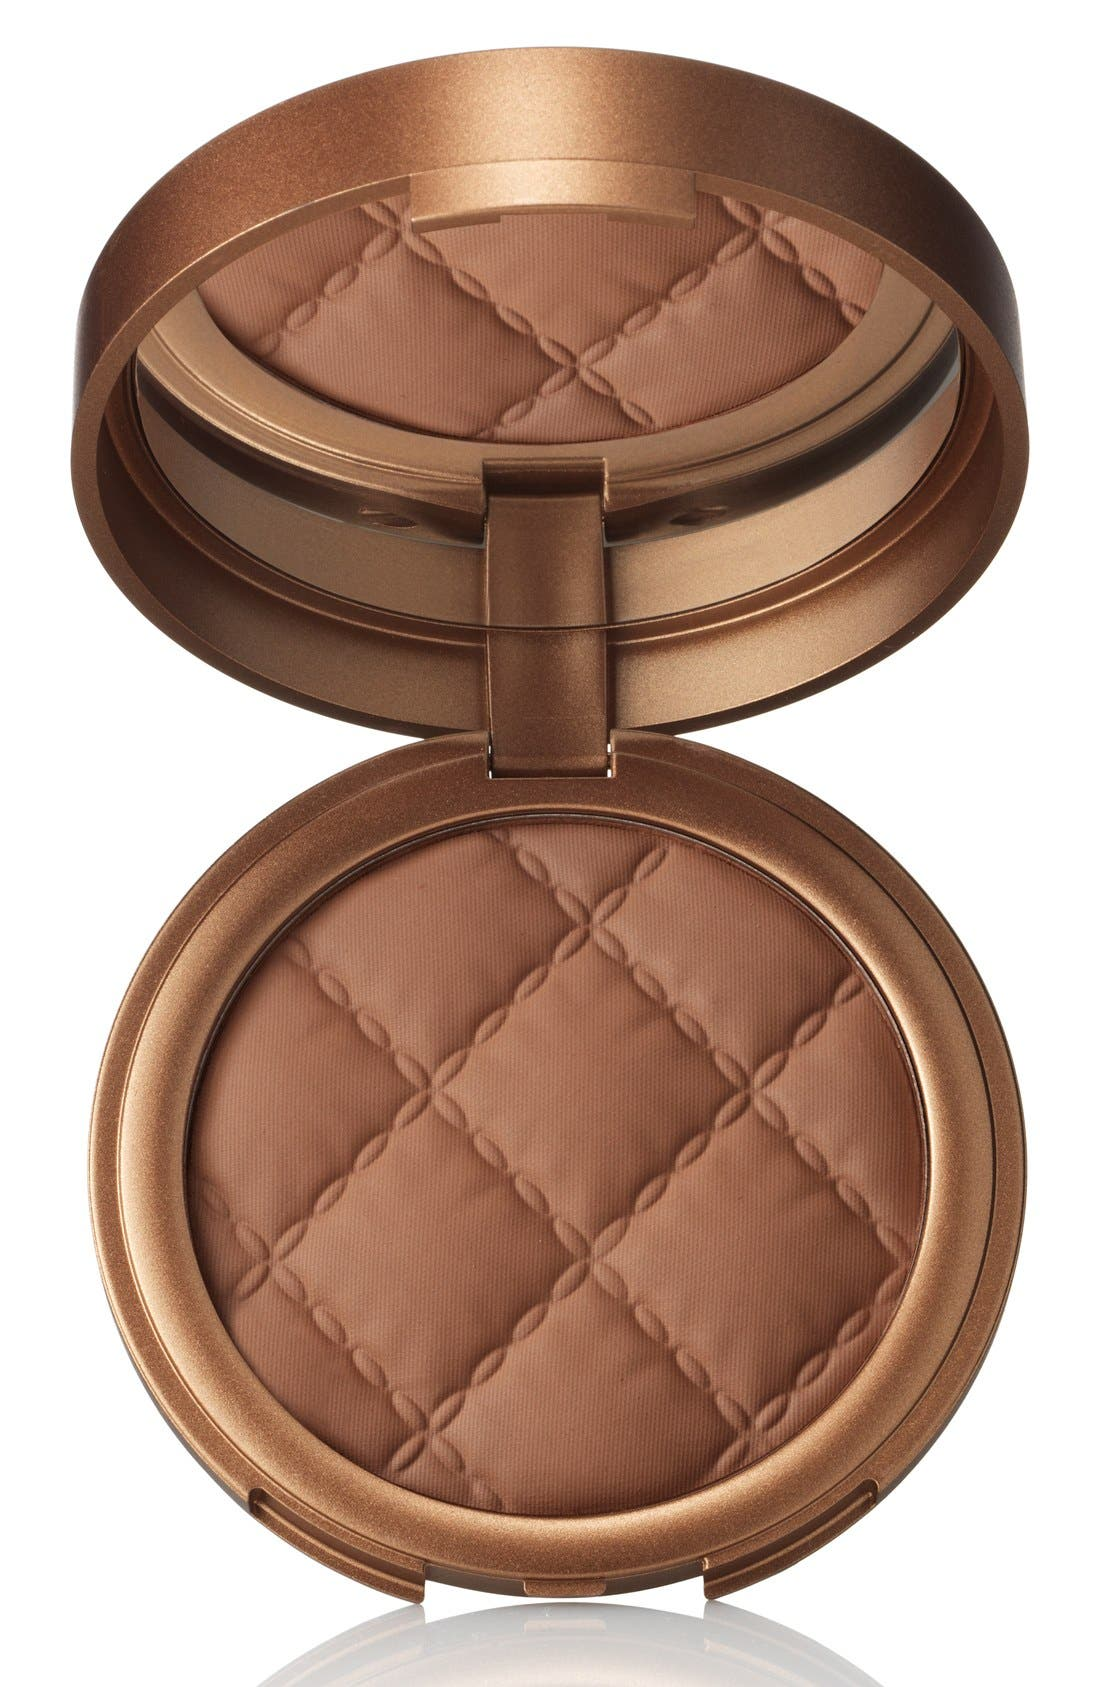 LAURA GELLER BEAUTY Beach Matte Baked Hydrating Bronzer, Main, color, 202